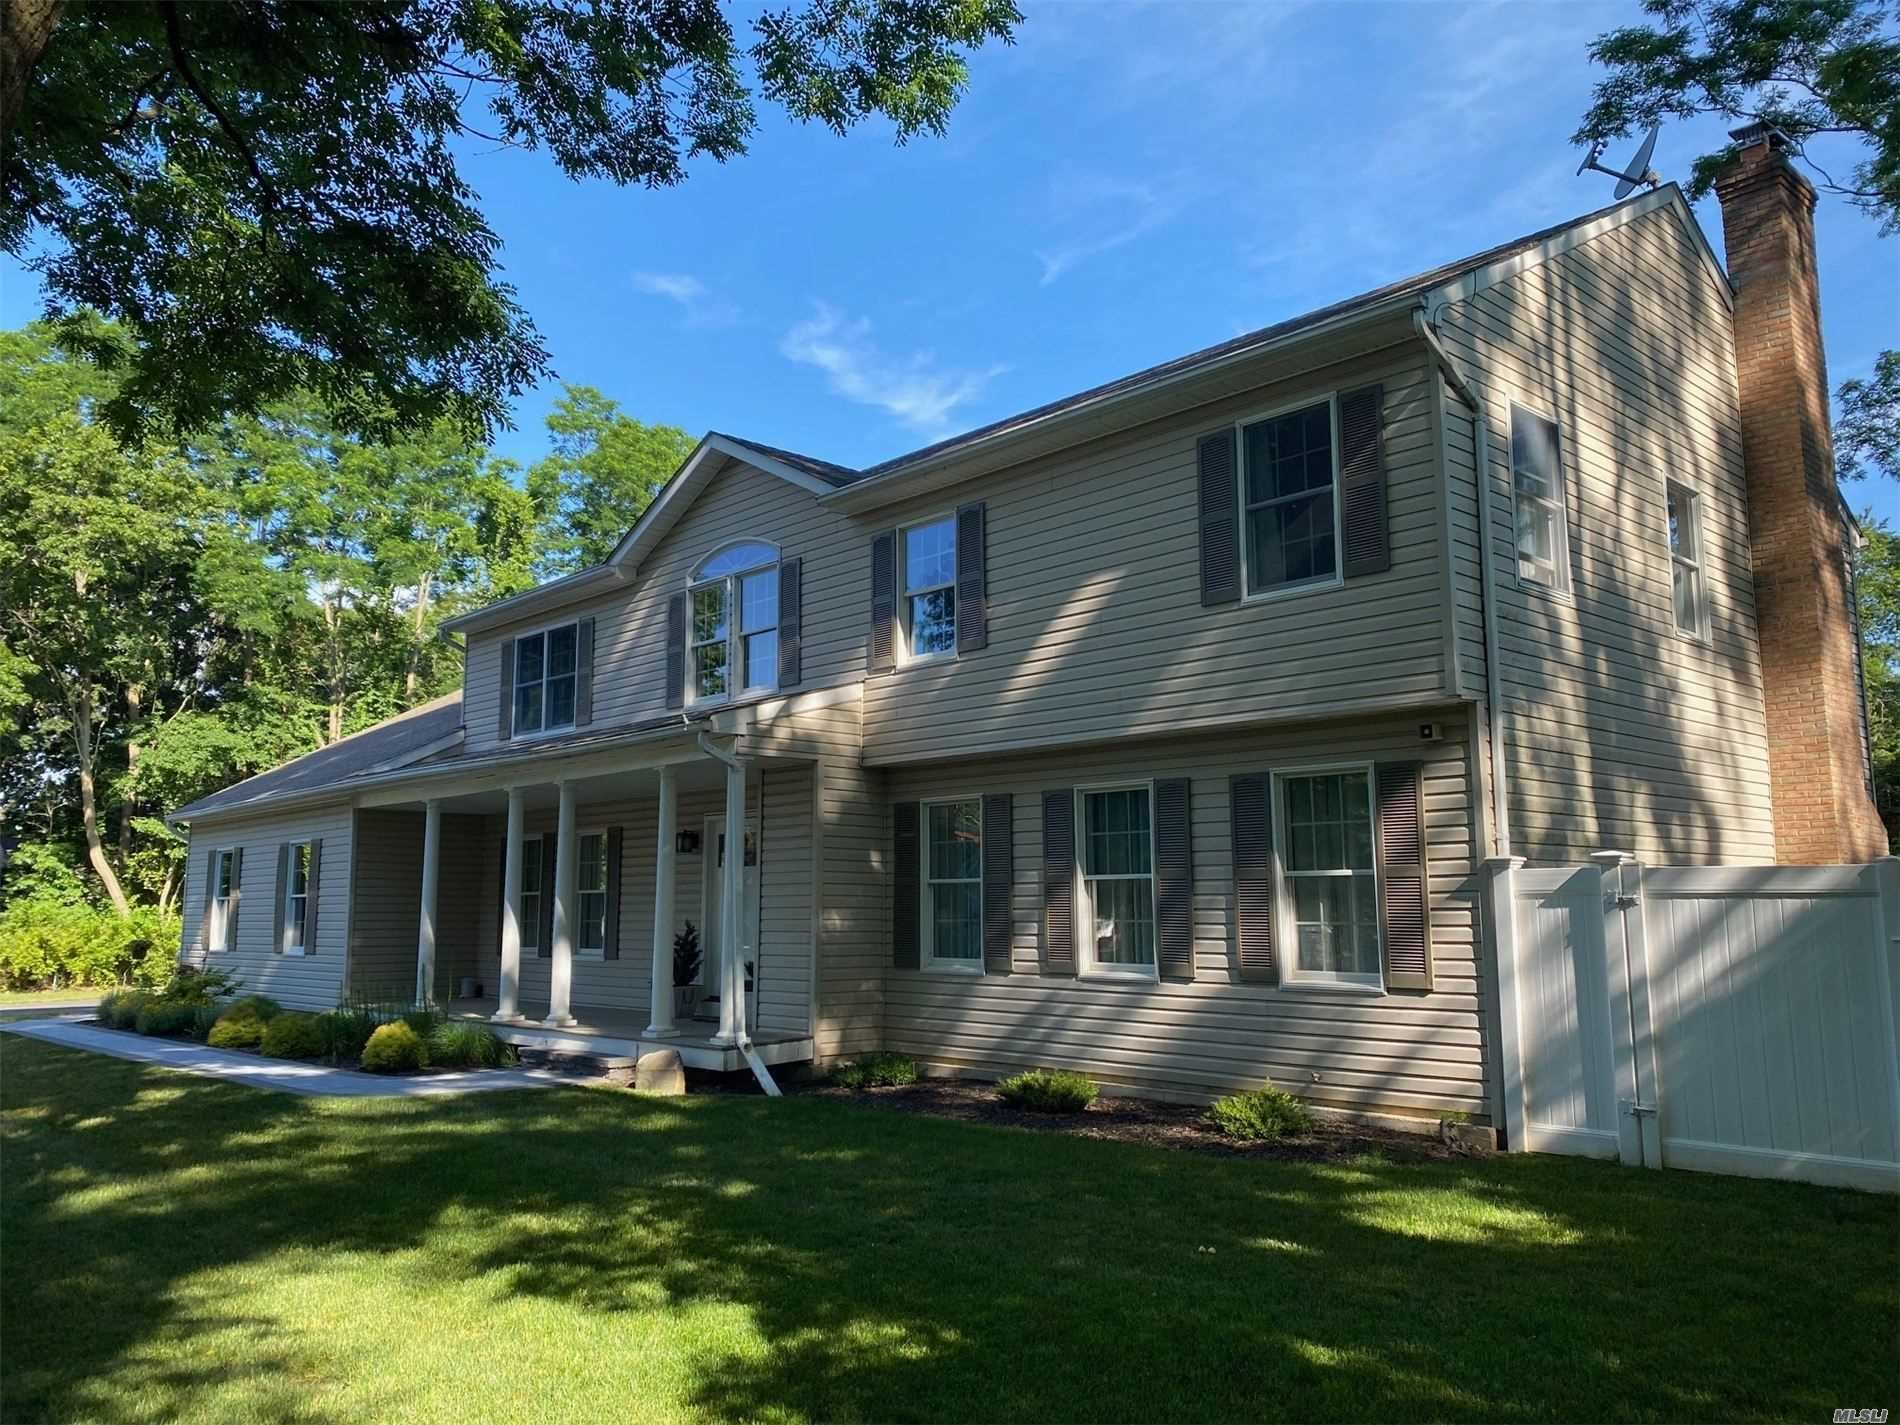 35 Niagara St, Miller Place, NY 11764 - MLS#: 3215898